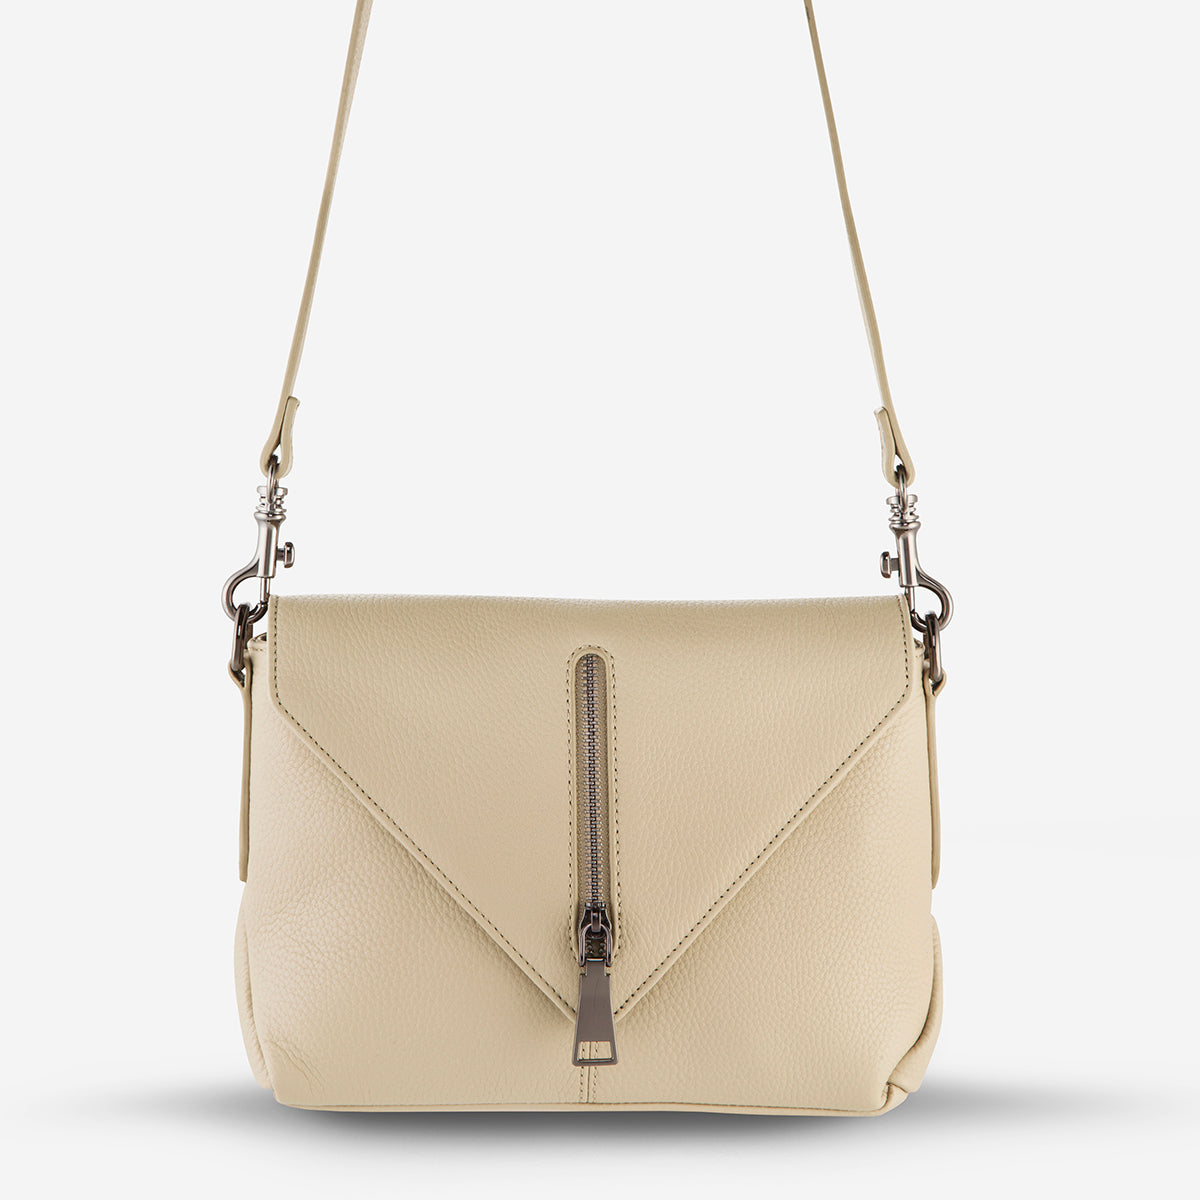 Status Anxiety Exile Women's Leather Crossbody Bag - Nude